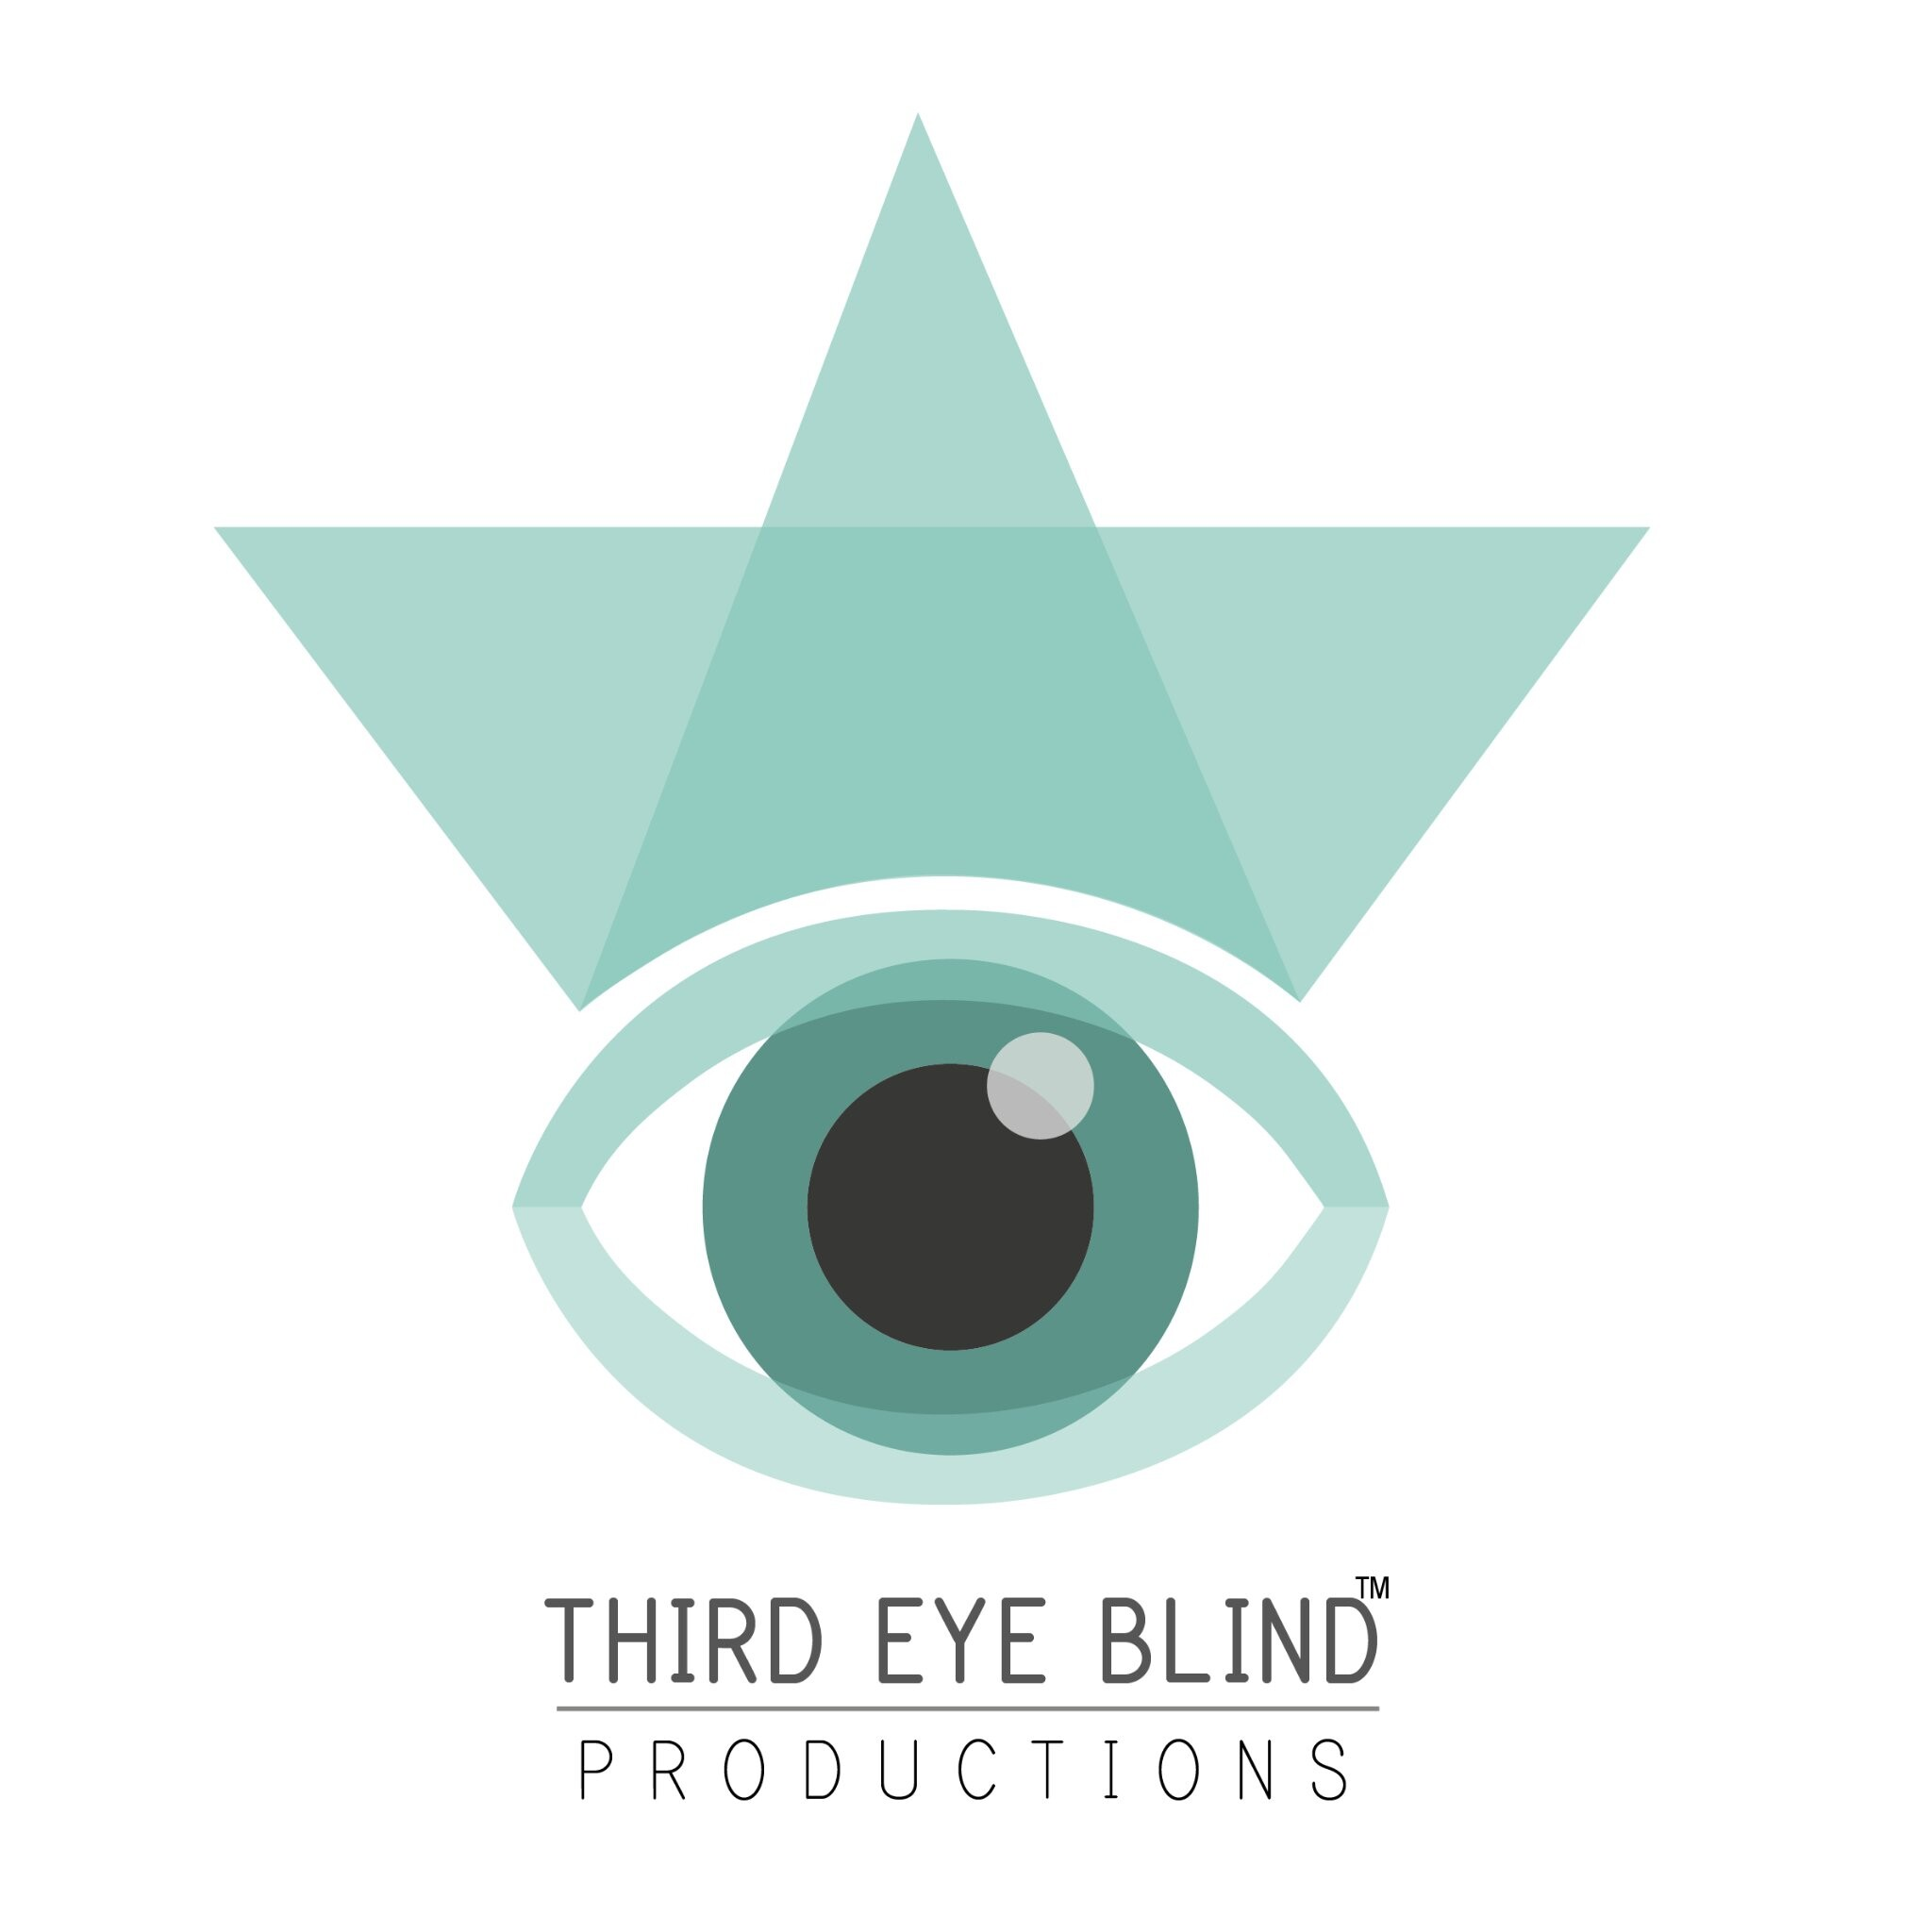 Third Eye Blind Prodcutions